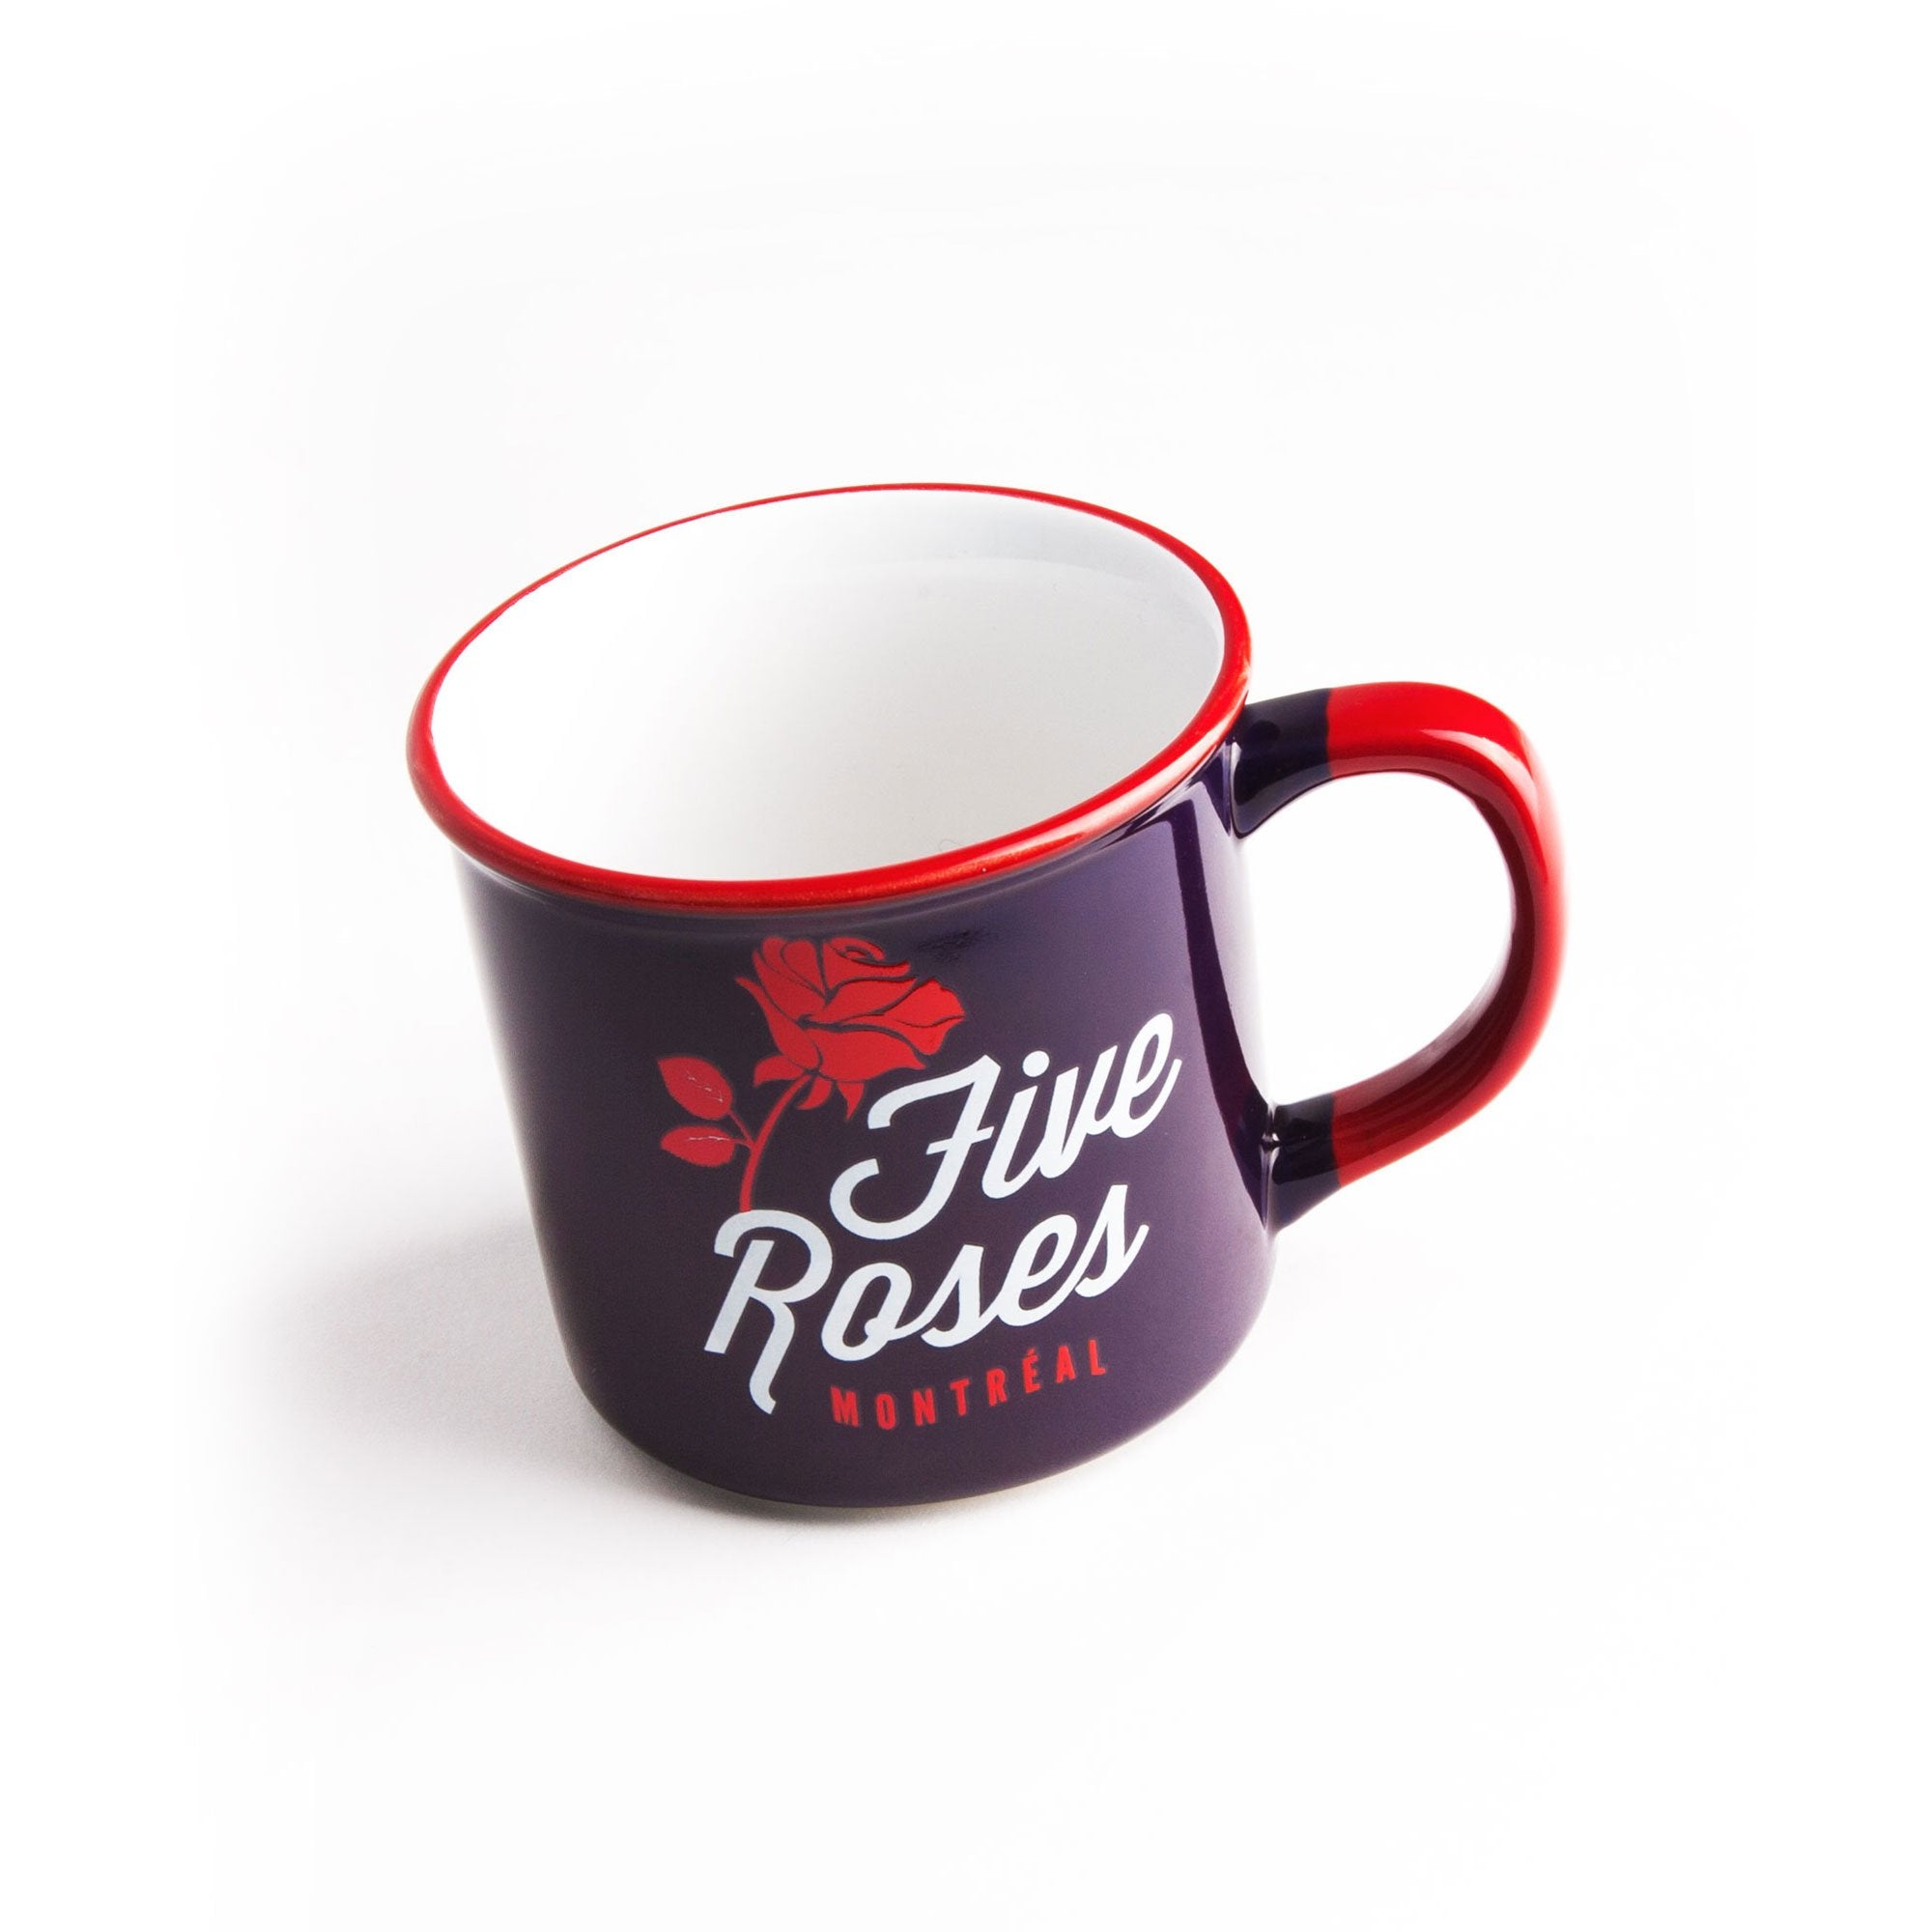 Five Roses Mug - Main and Local